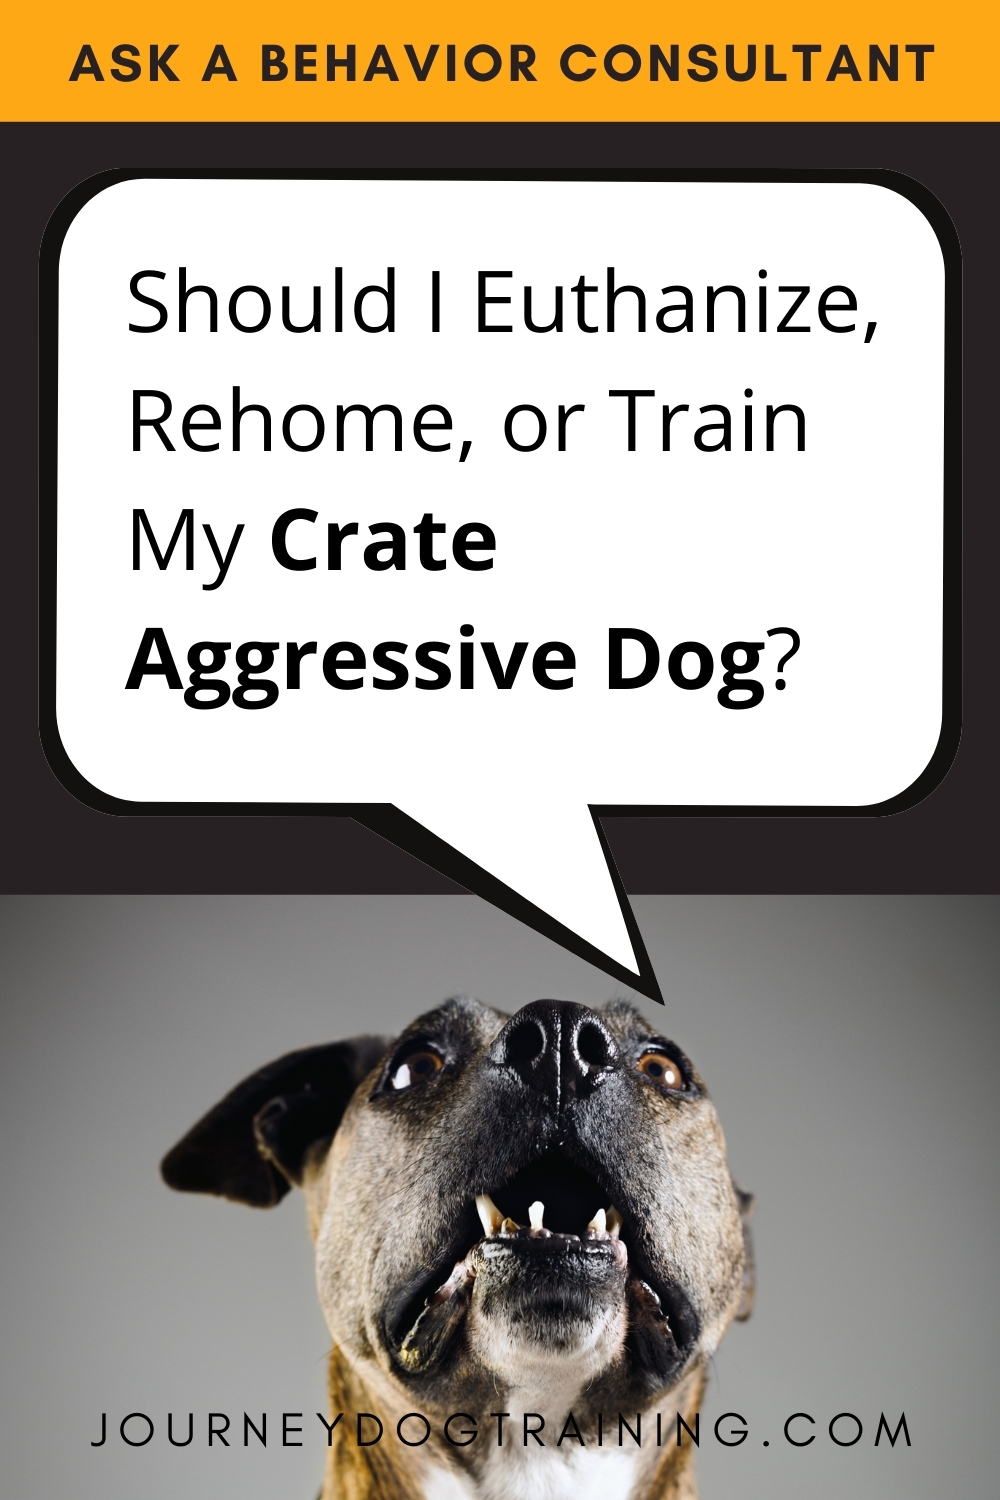 Ask a Behavior Consultant: should I euthanize, rehome or train my crate aggressive dog? https://journeydogtraining.com/crate-aggression/